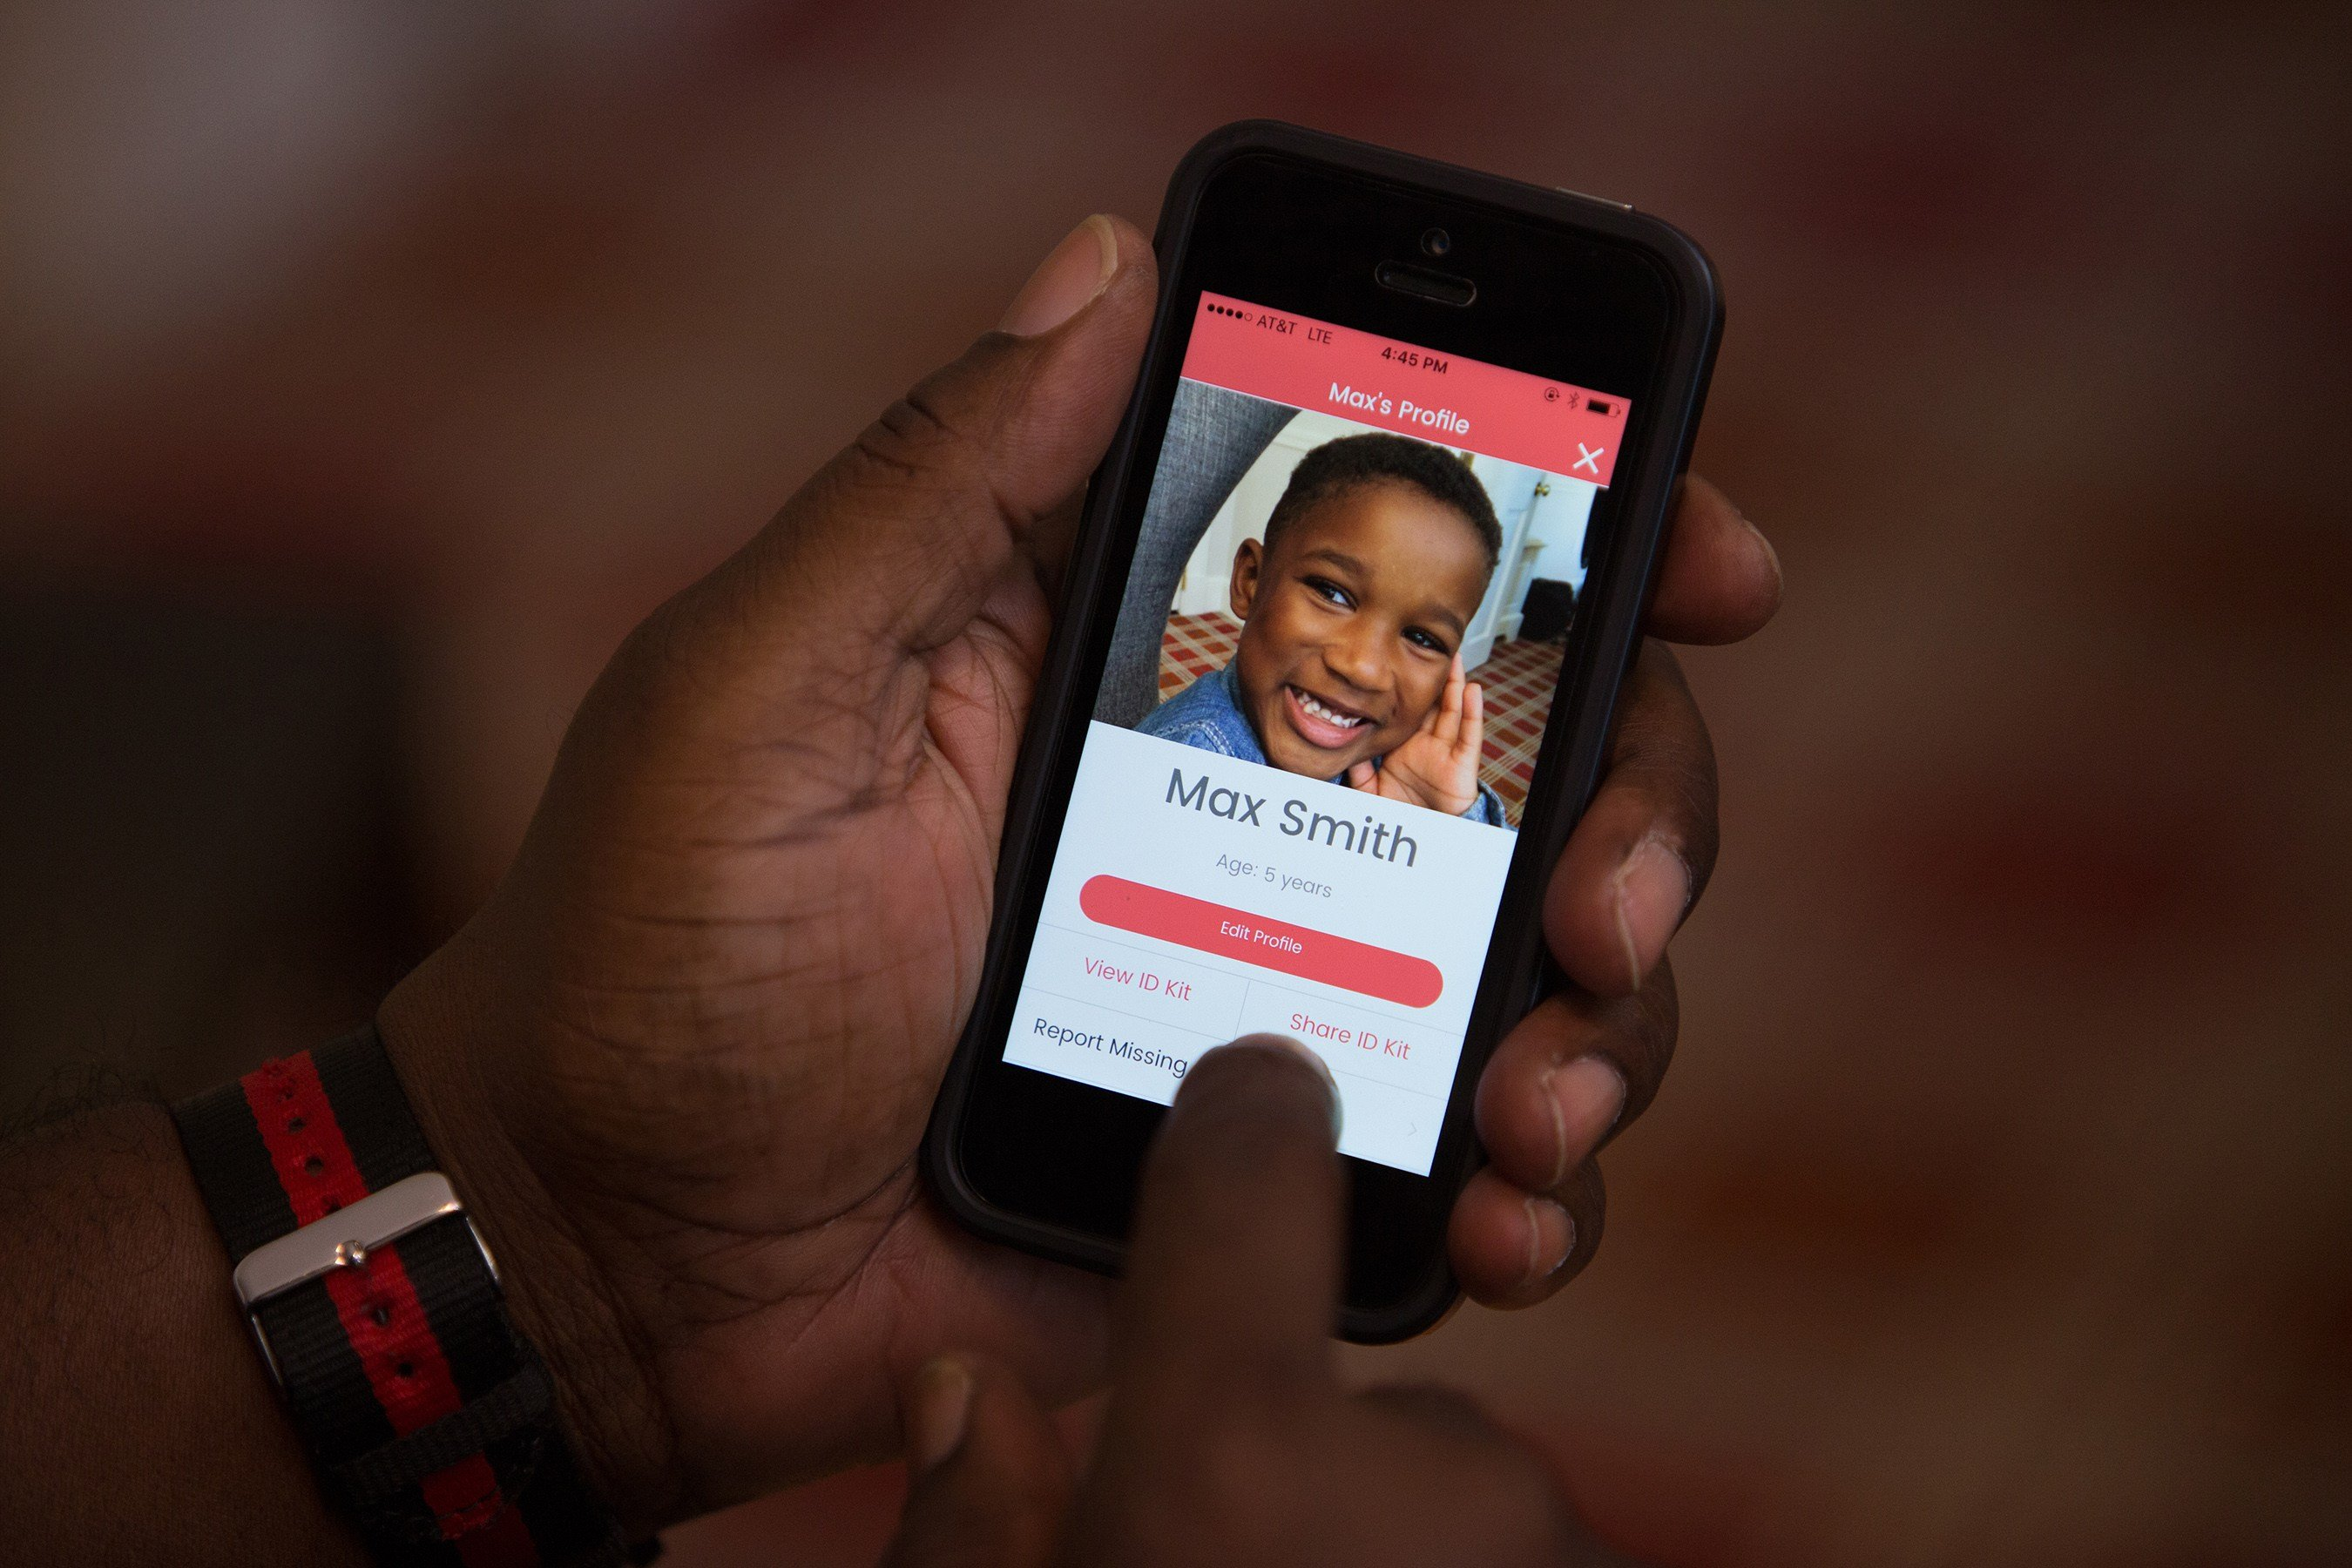 With the touch of a button, the app can send an up-to-date photo, descriptive information and digital fingerprints to law enforcement if a child goes missing. The app will remind users when it's time to update the photo of their child. Source: NCMEC